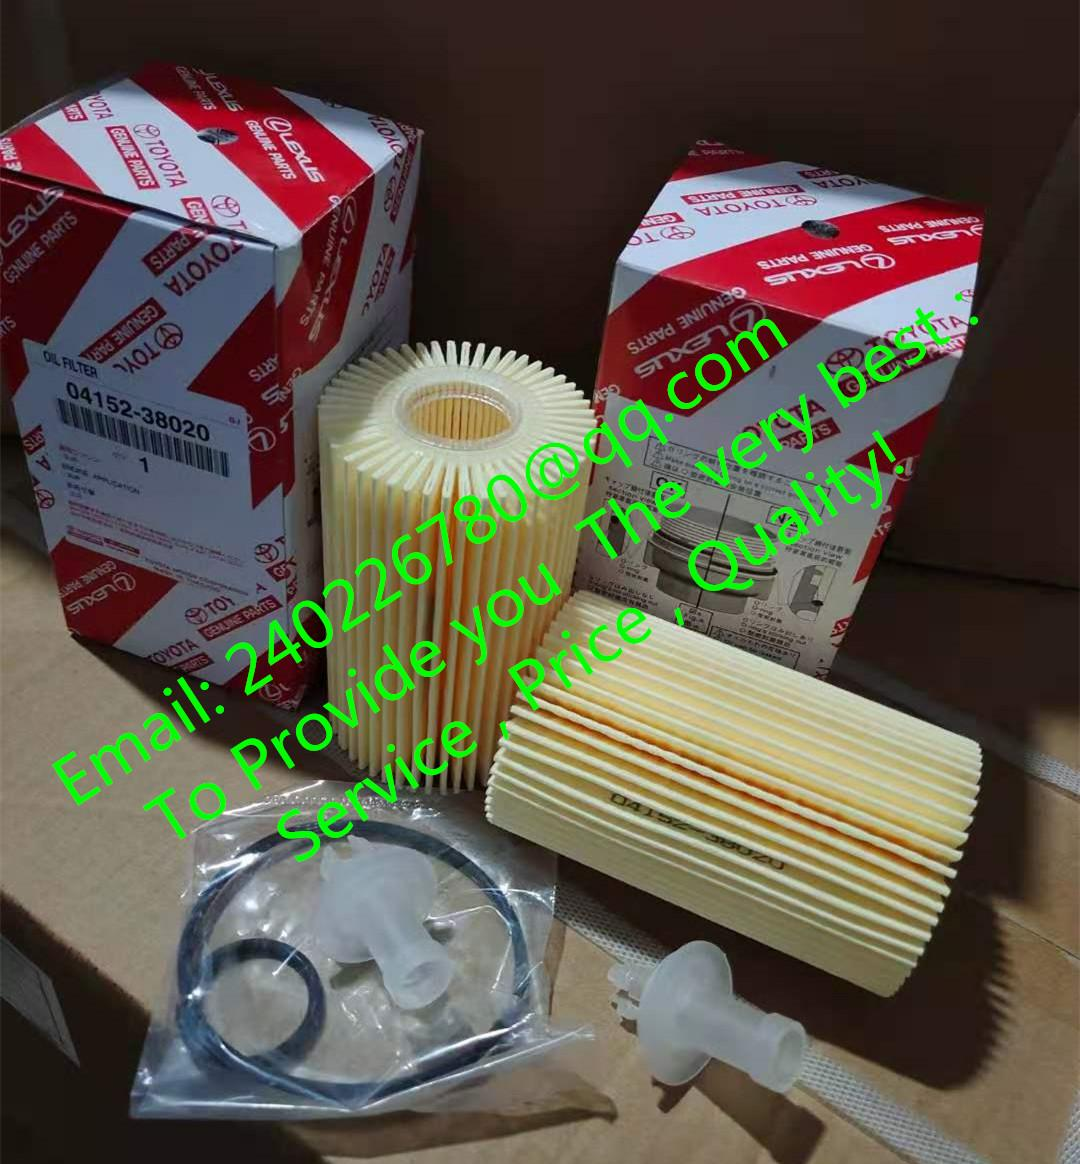 FOR TOYOTA LEXUS LX460 Oil Filter 04152-38020 0415238020 04152-51010 04152-YZZA4